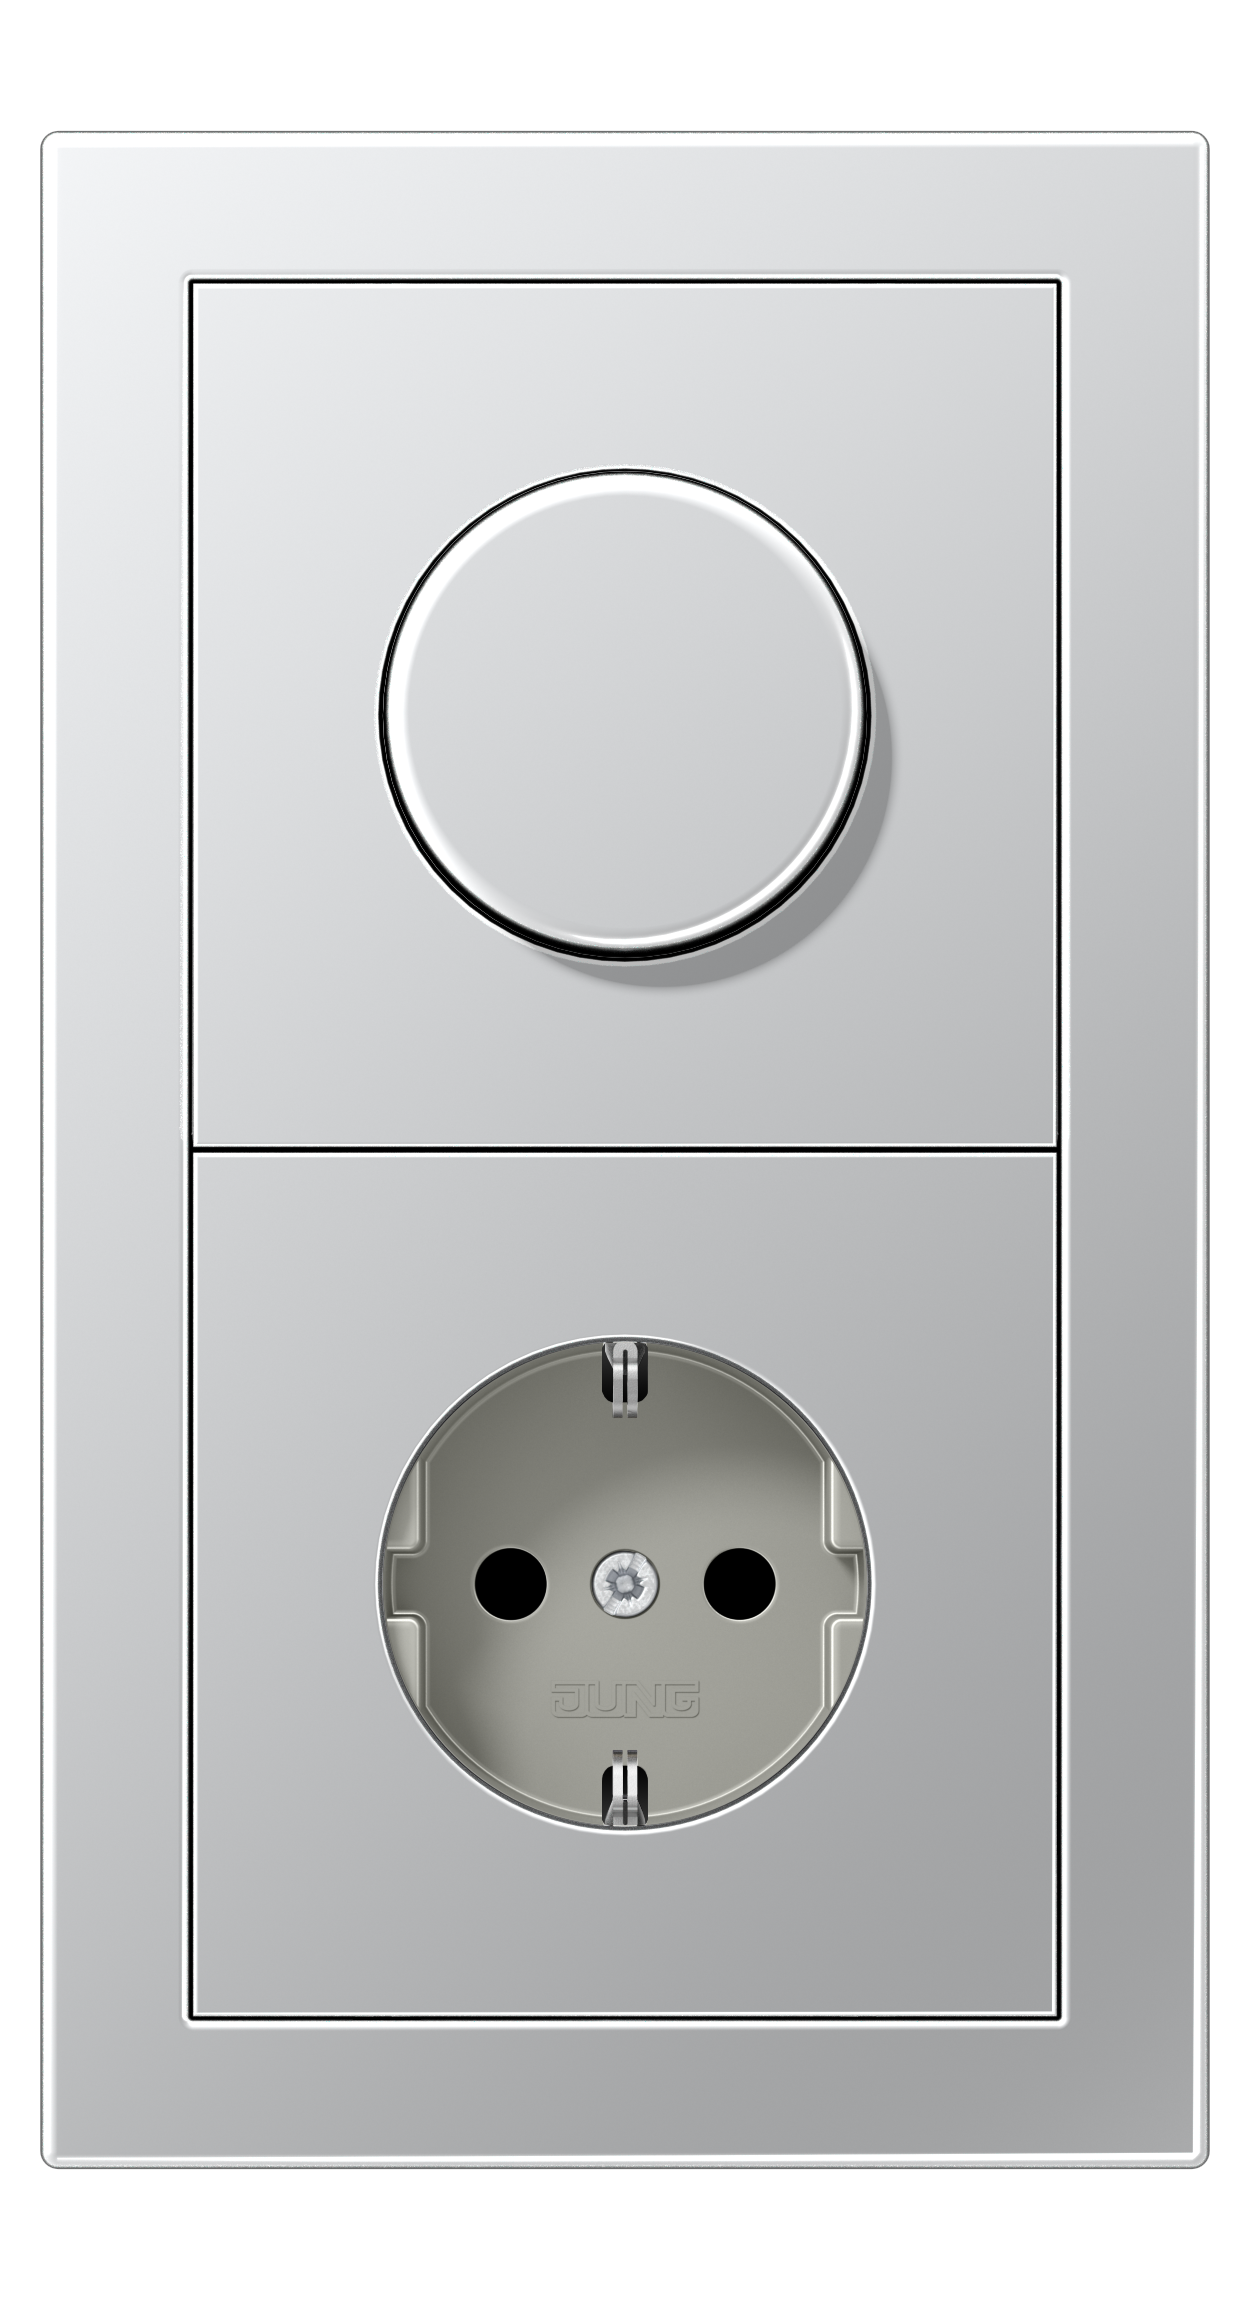 JUNG_LS_Design_aluminium_dimmer-socket